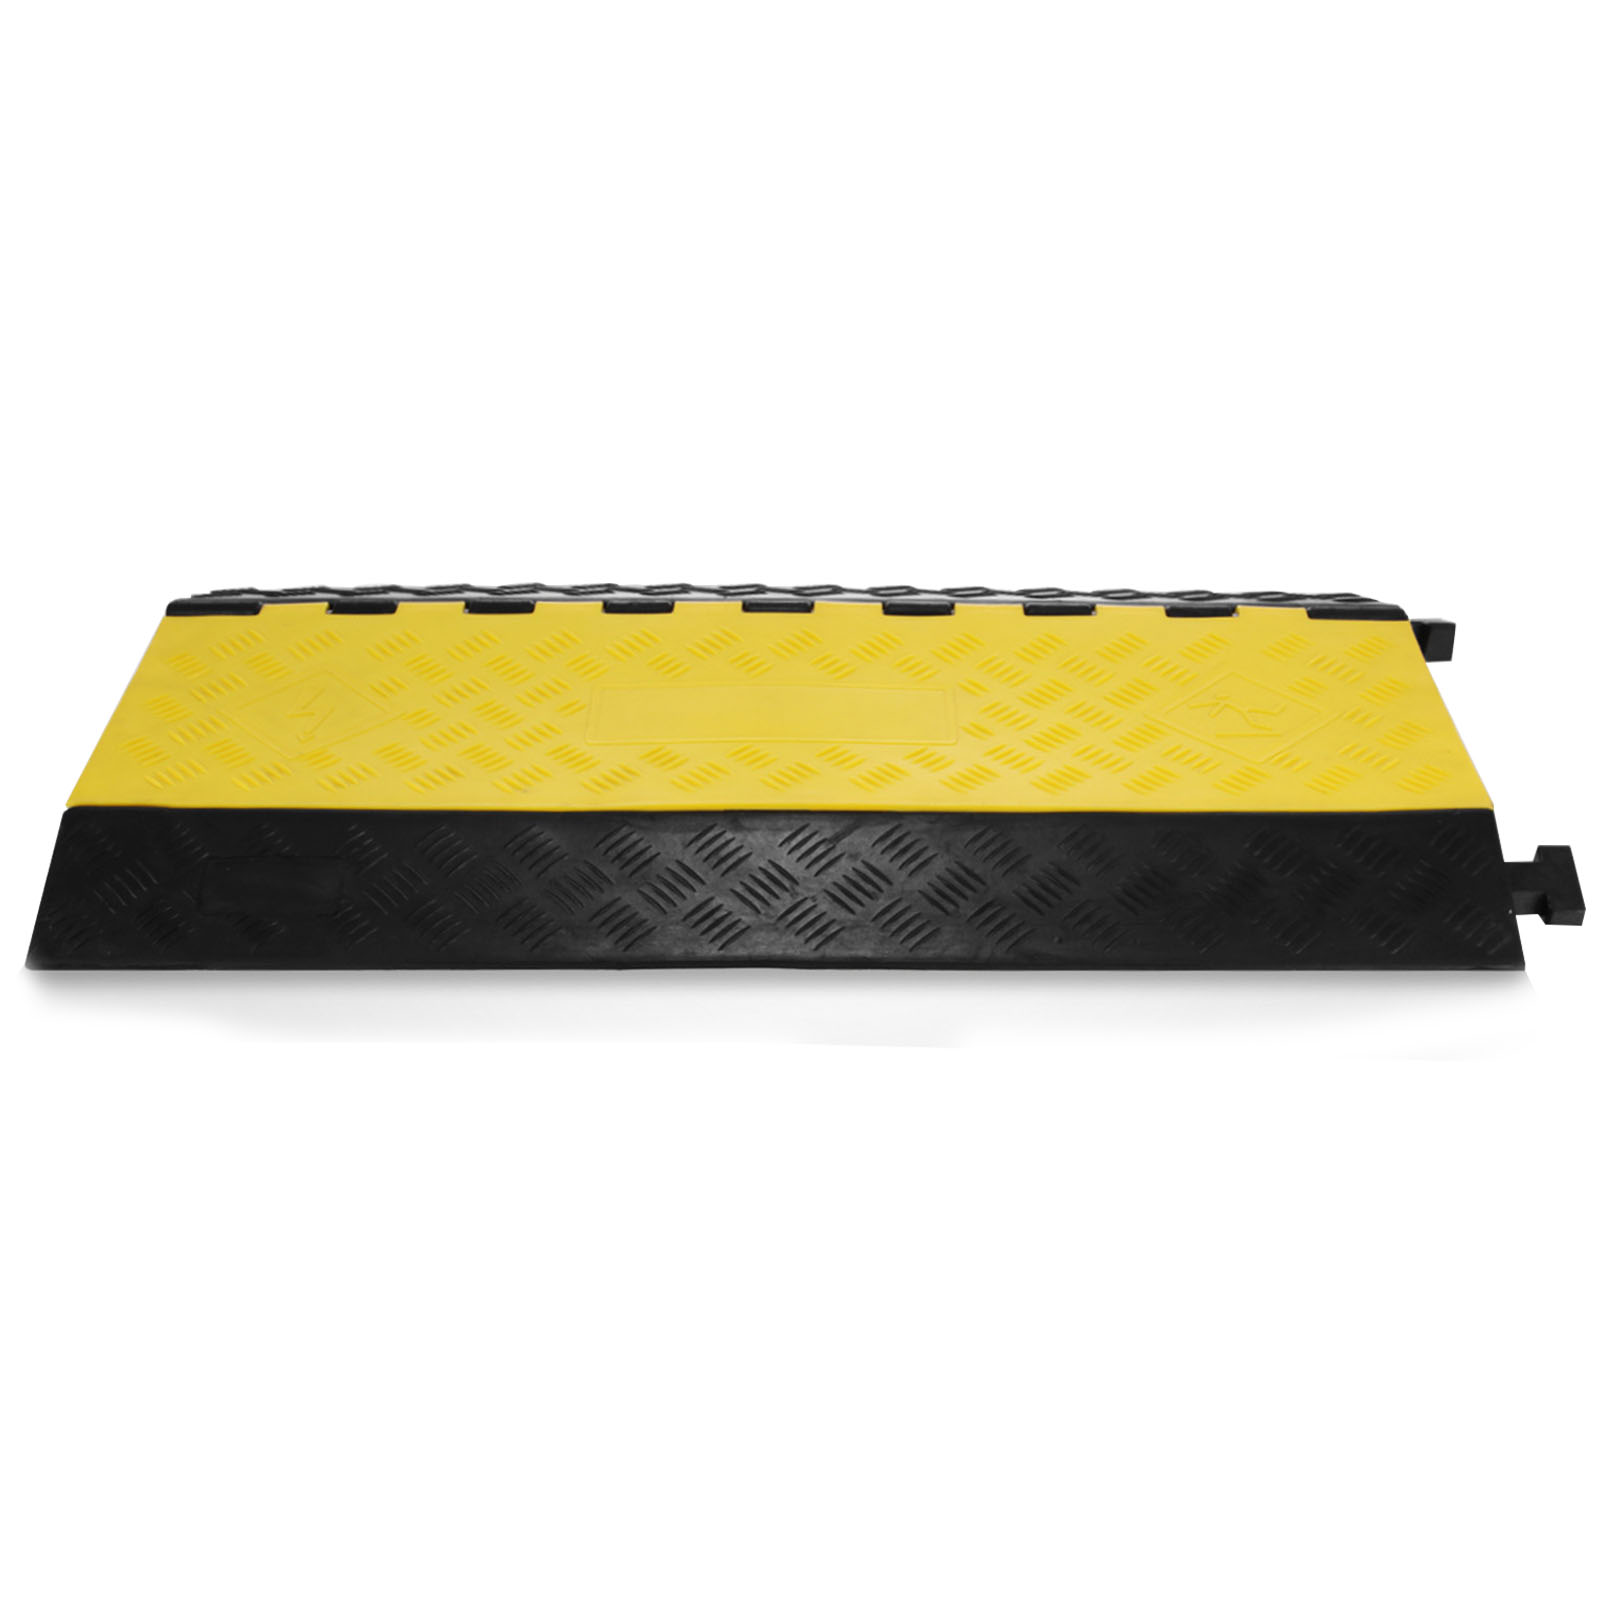 5-Cable Rubber Warehouse Safety Electrical Vehicle Wire Covers Ramp ...